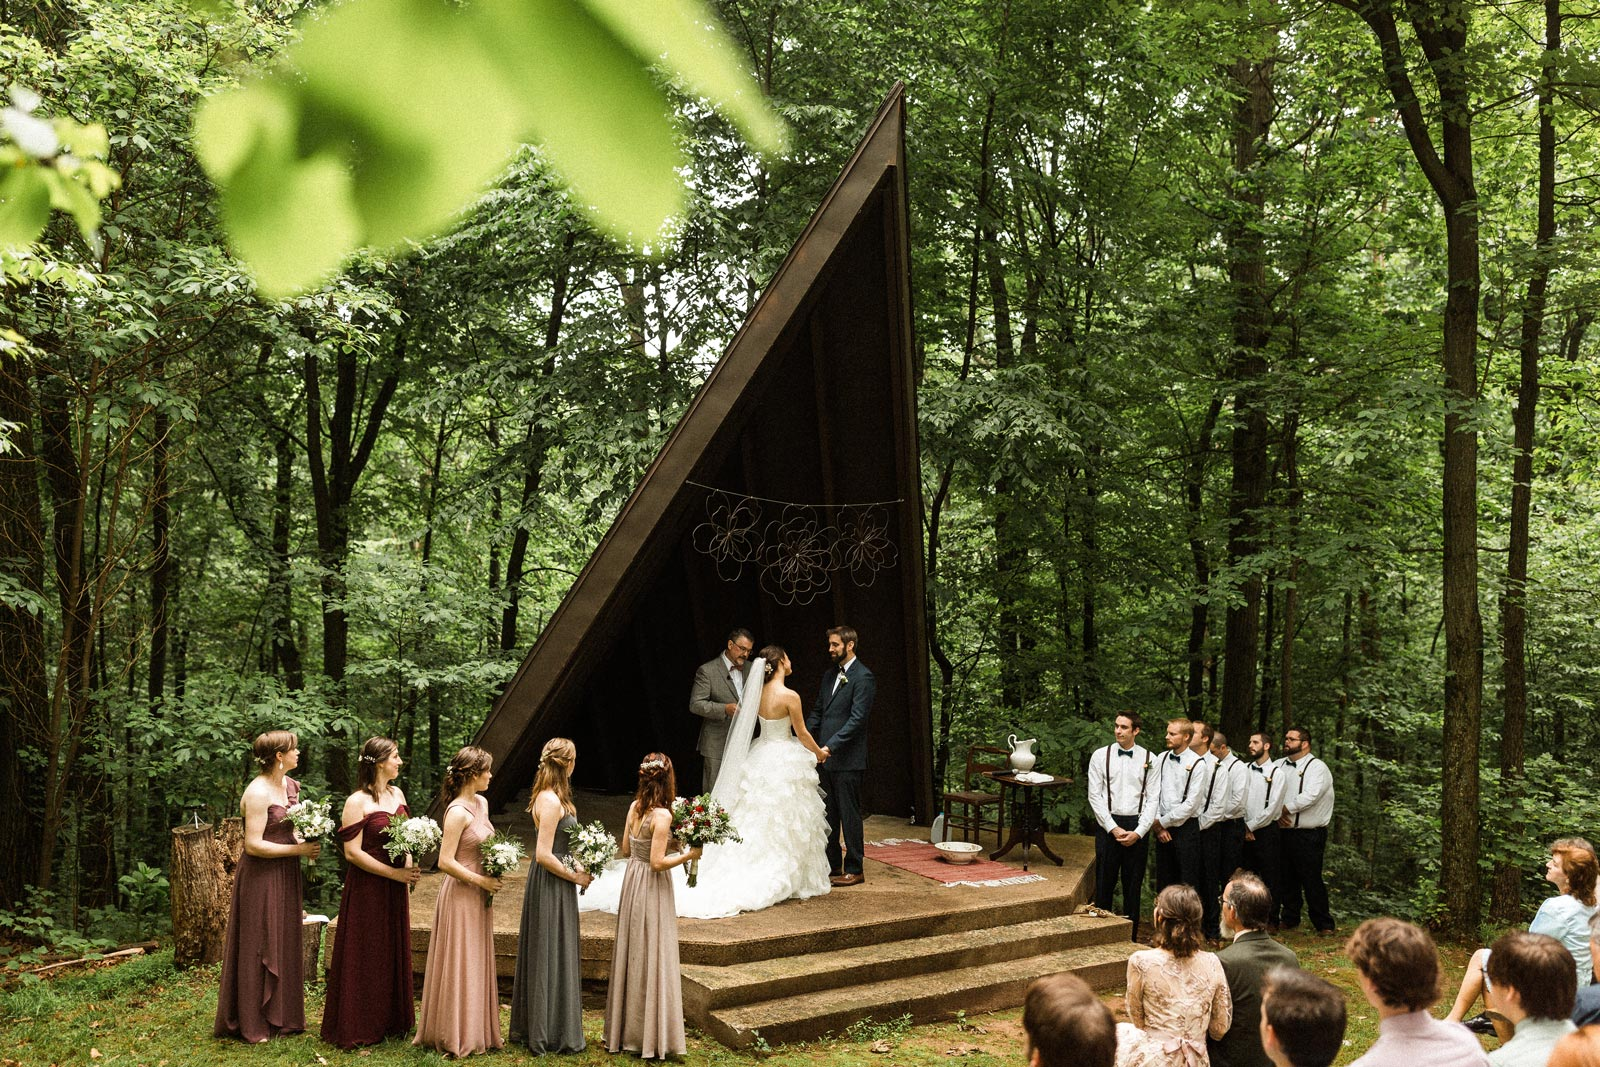 The wedding of Dale Miller and Elizabeth Mae Smith at Camp Mack in Newmanstown, Pennsylvania.